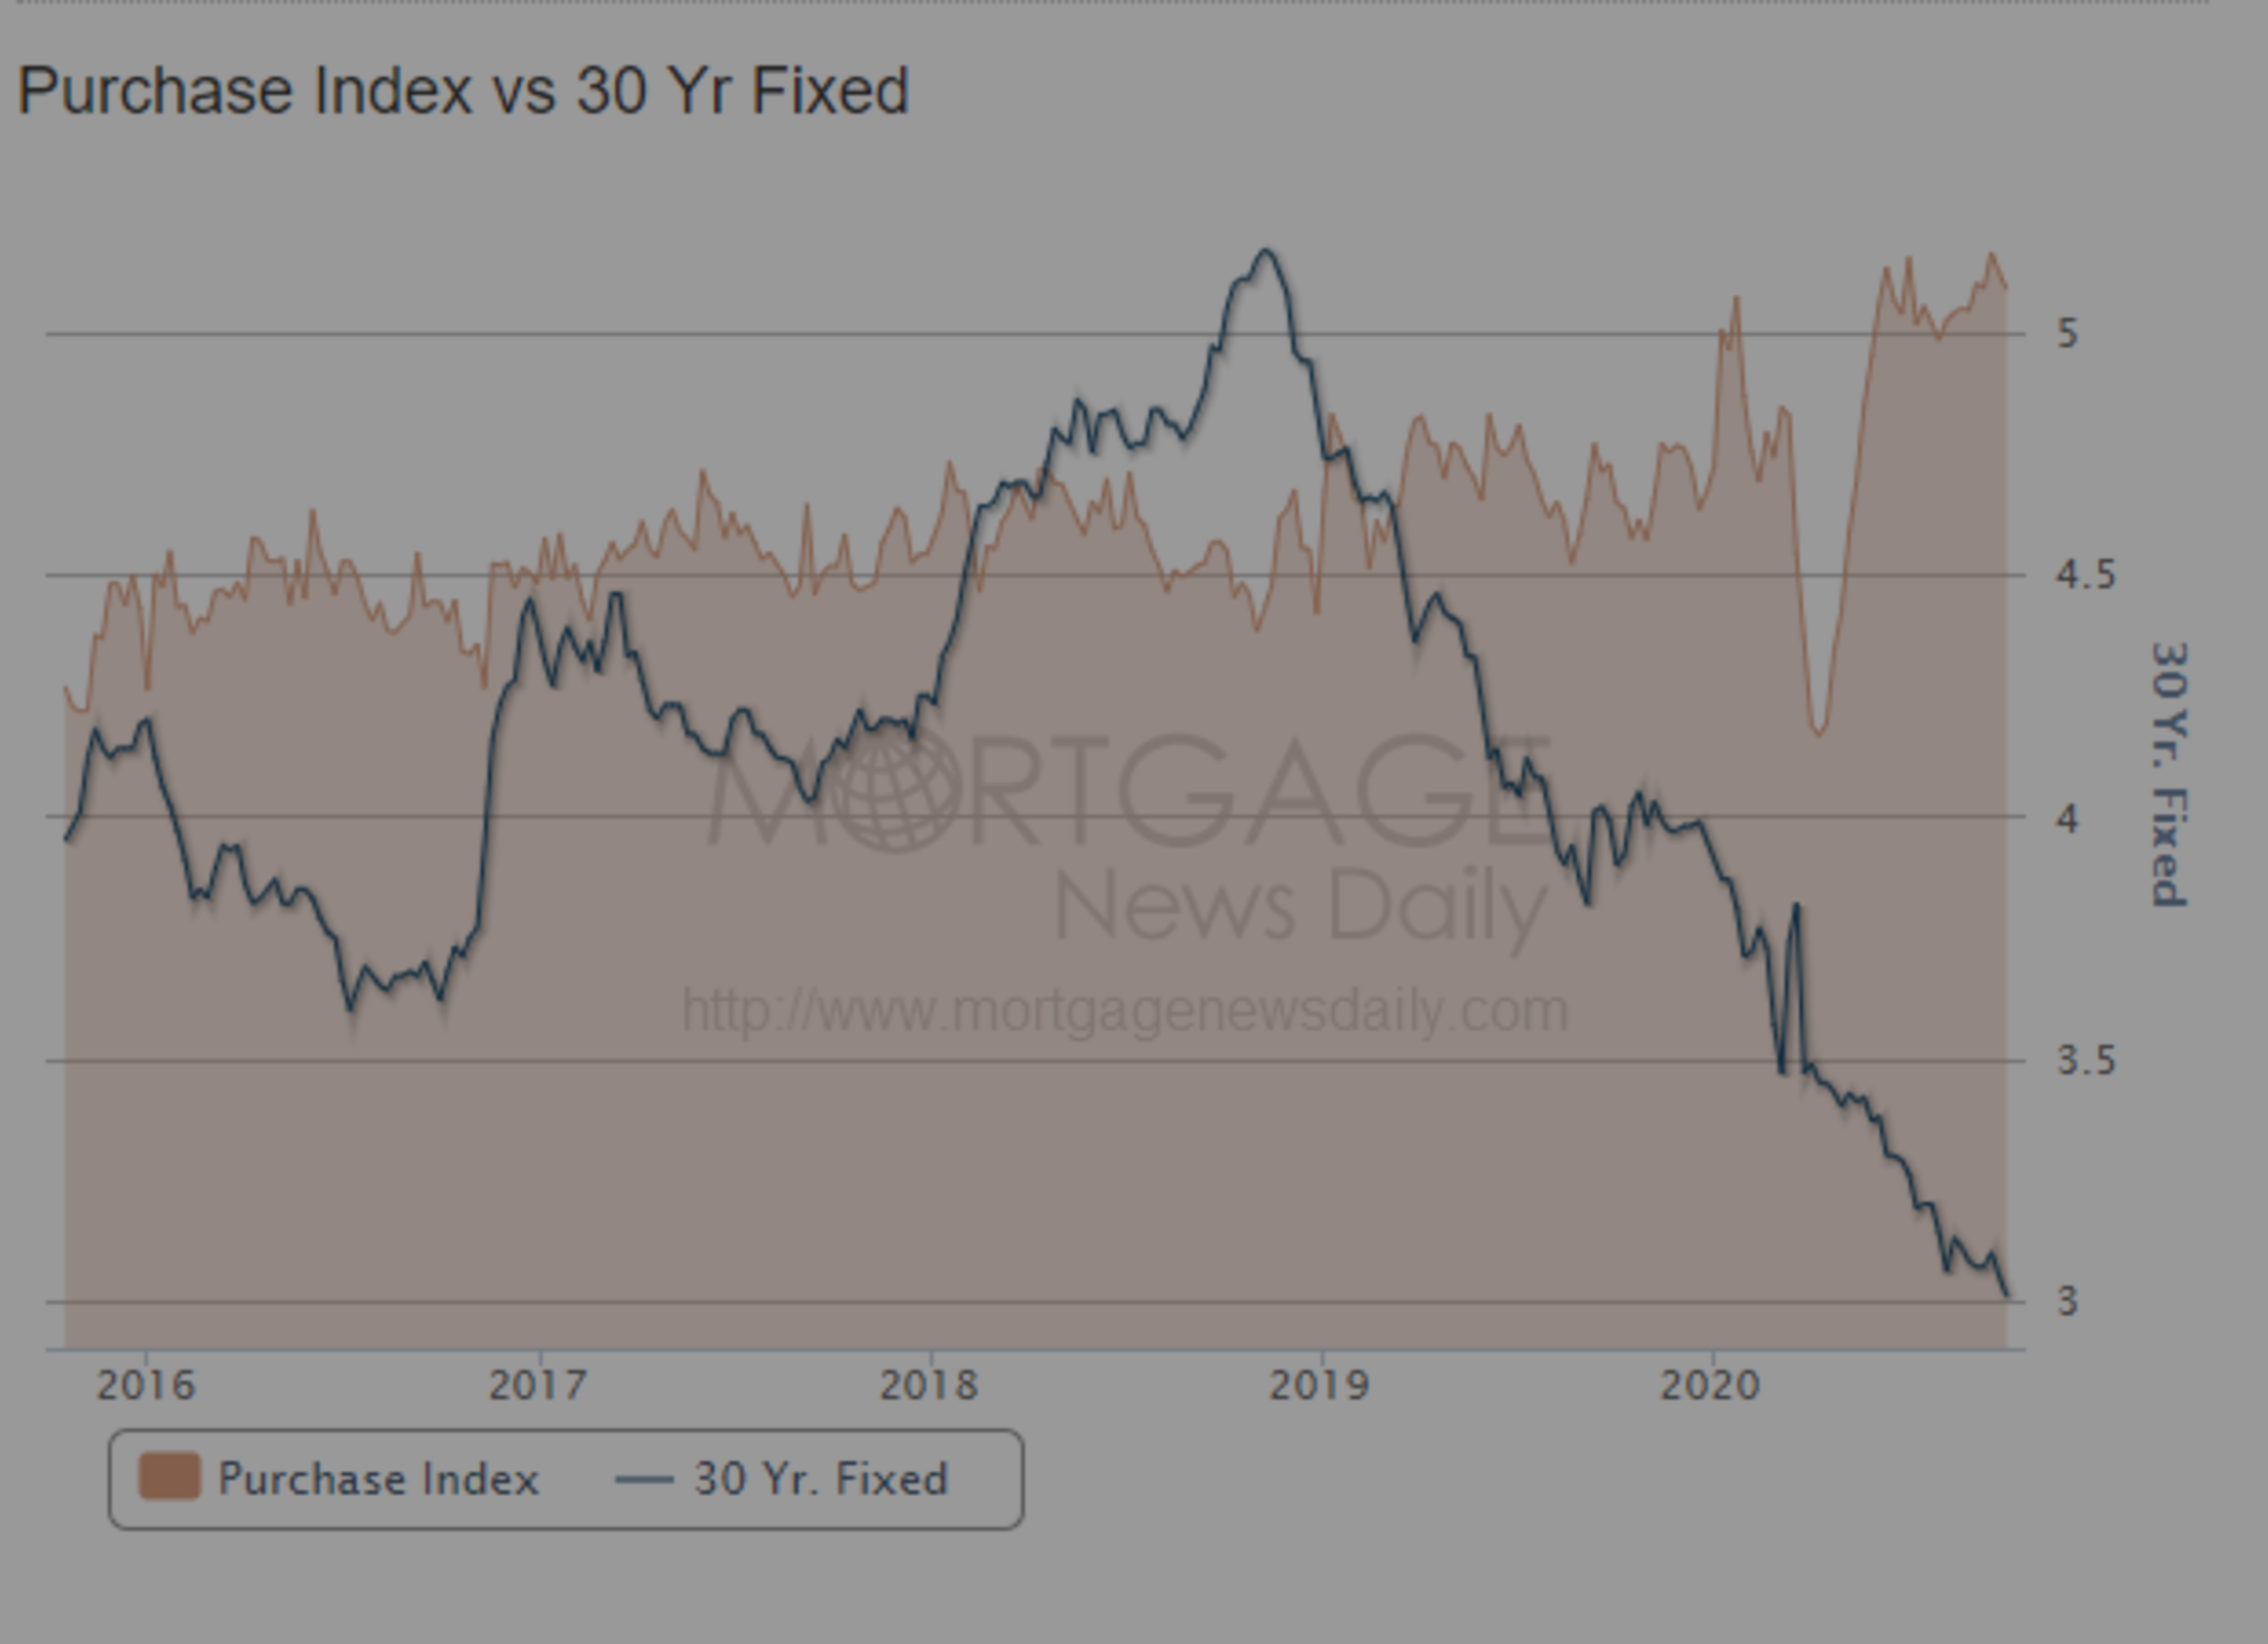 Purchase index applications vs. 30 year Fixed Rate